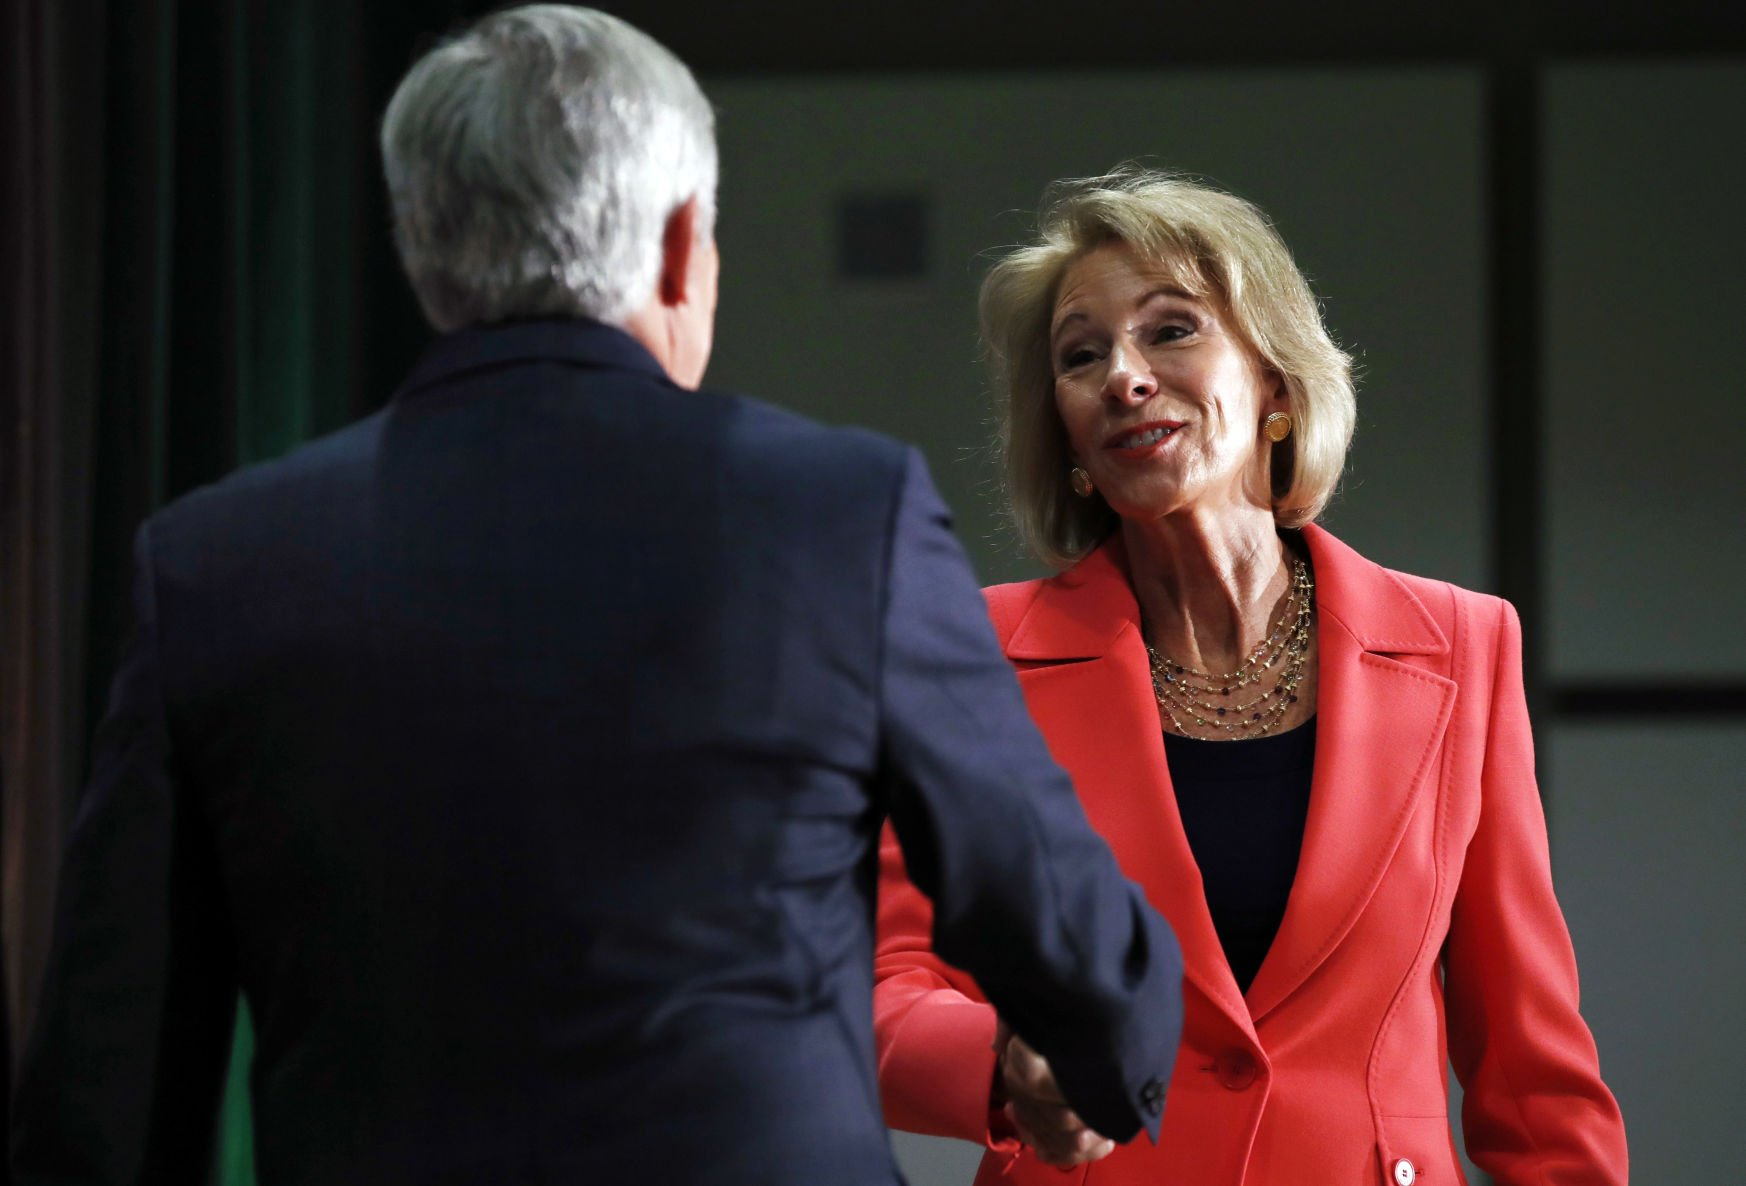 Education Secretary Betsy DeVos in Indiana Friday to visit schools